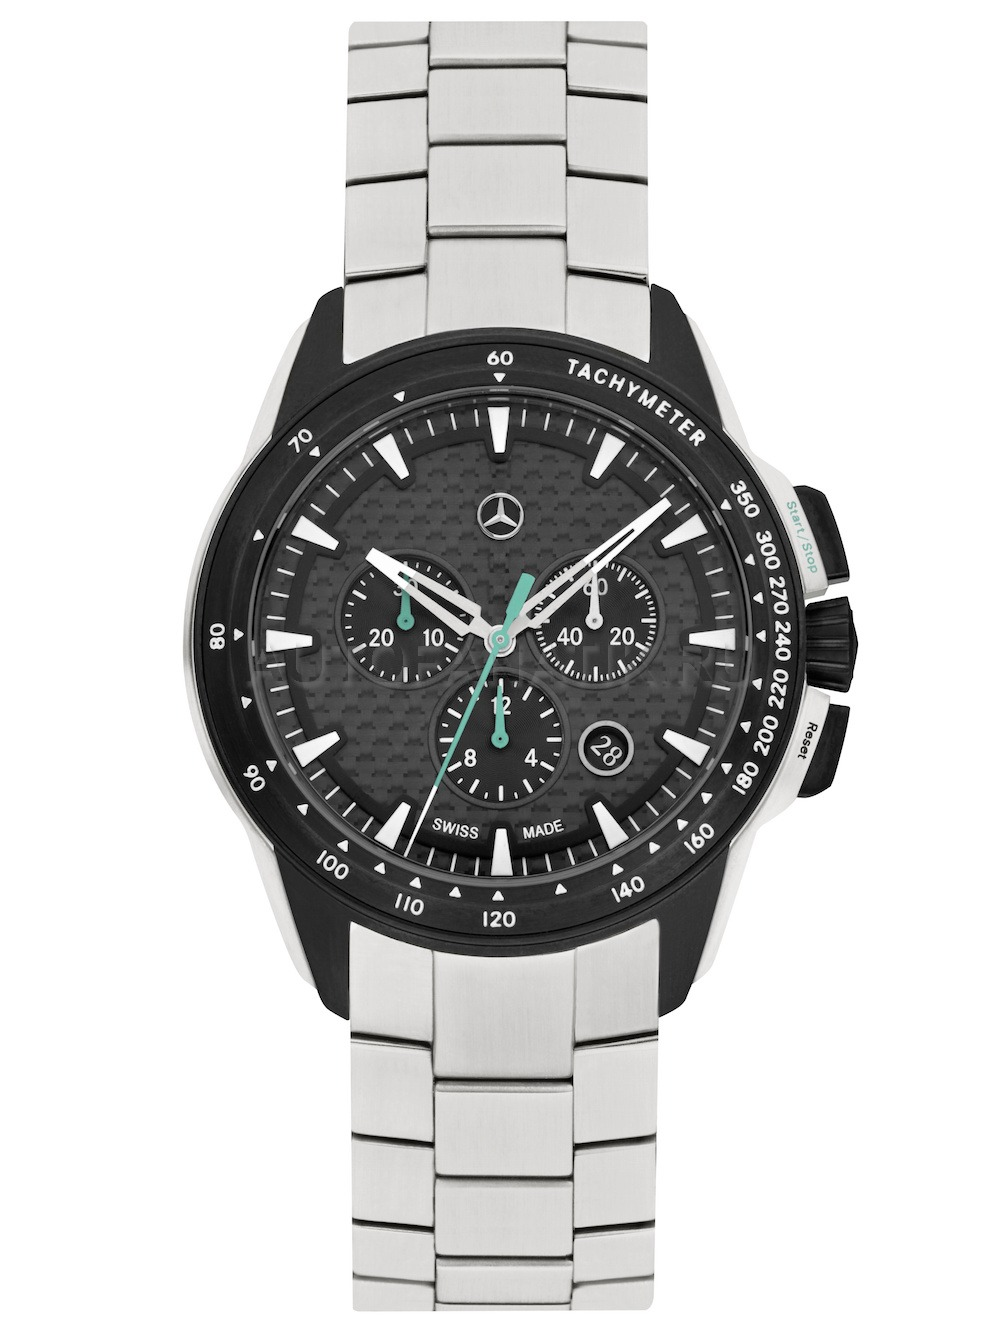 Мужские наручные часы Mercedes-Benz Men s Motorsport Chronograph Watch b4575f8051703